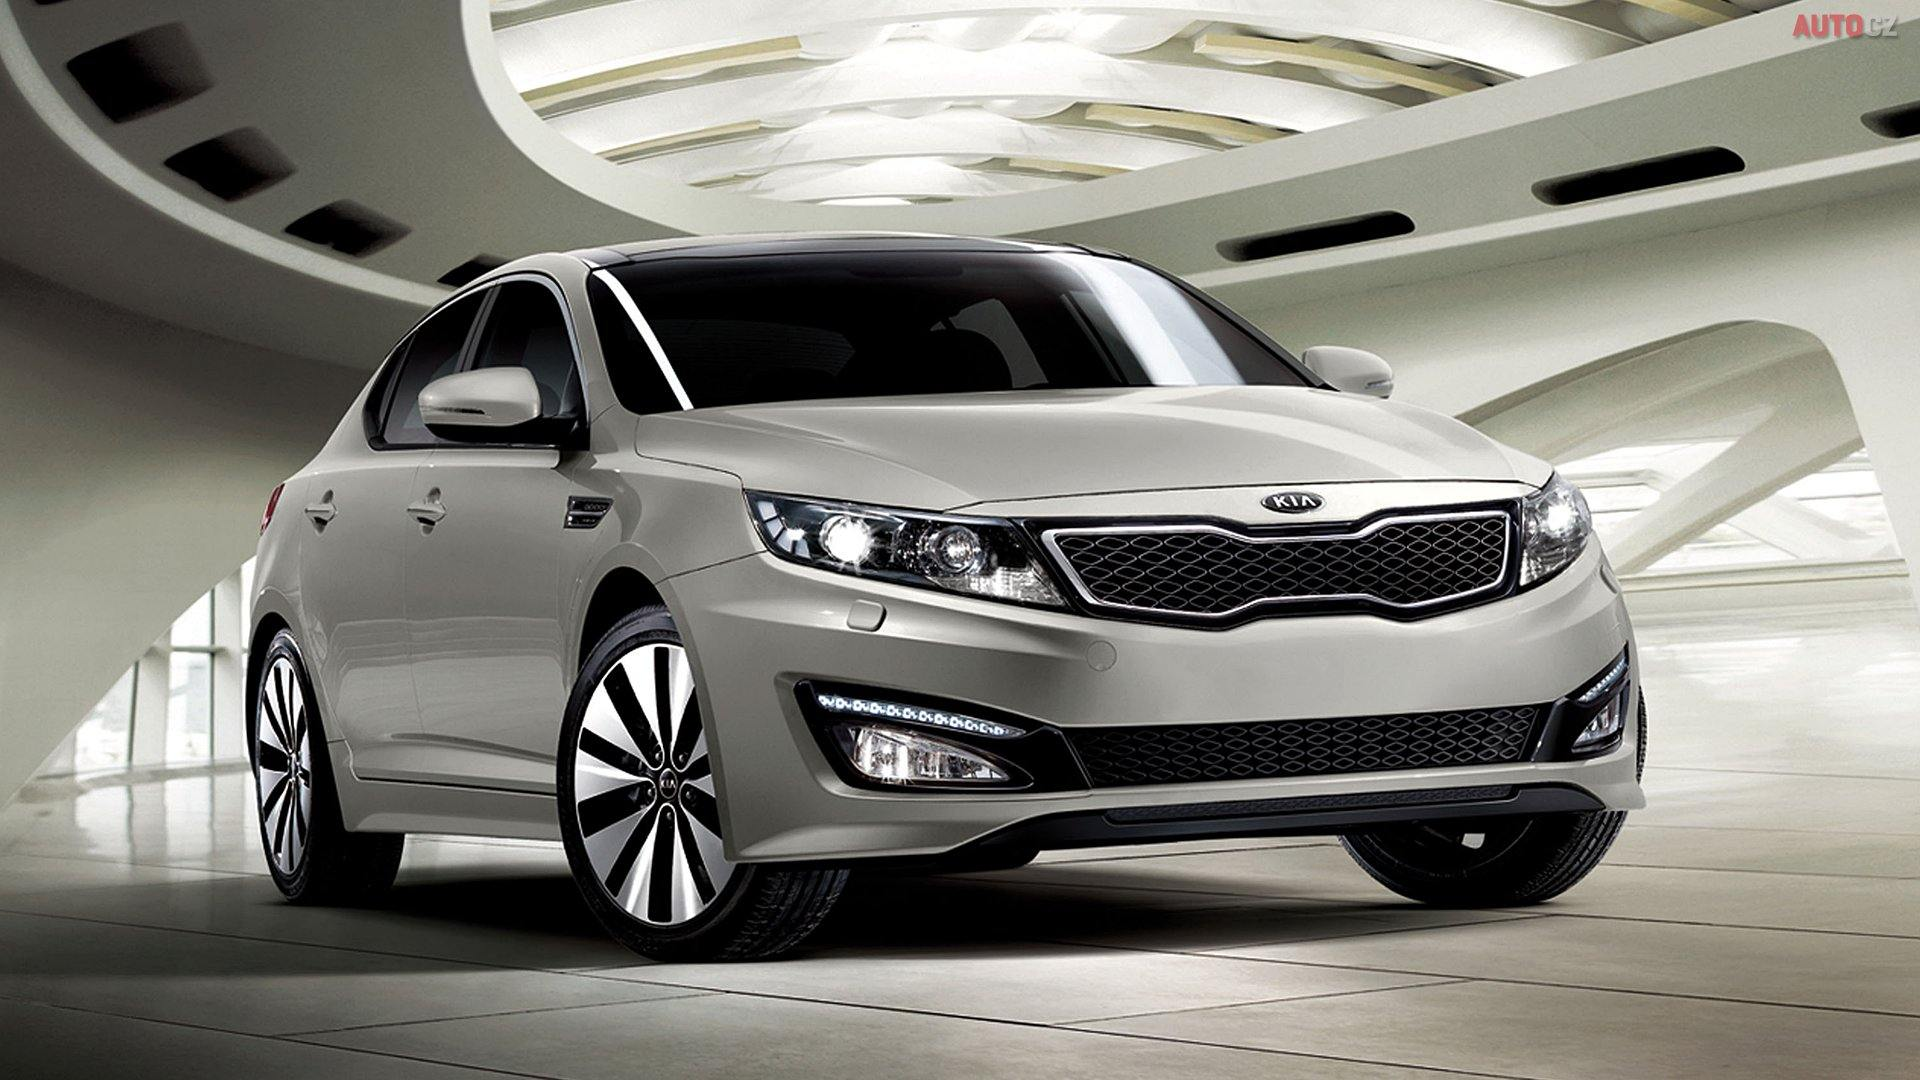 Kia Optima wallpaper hd free download